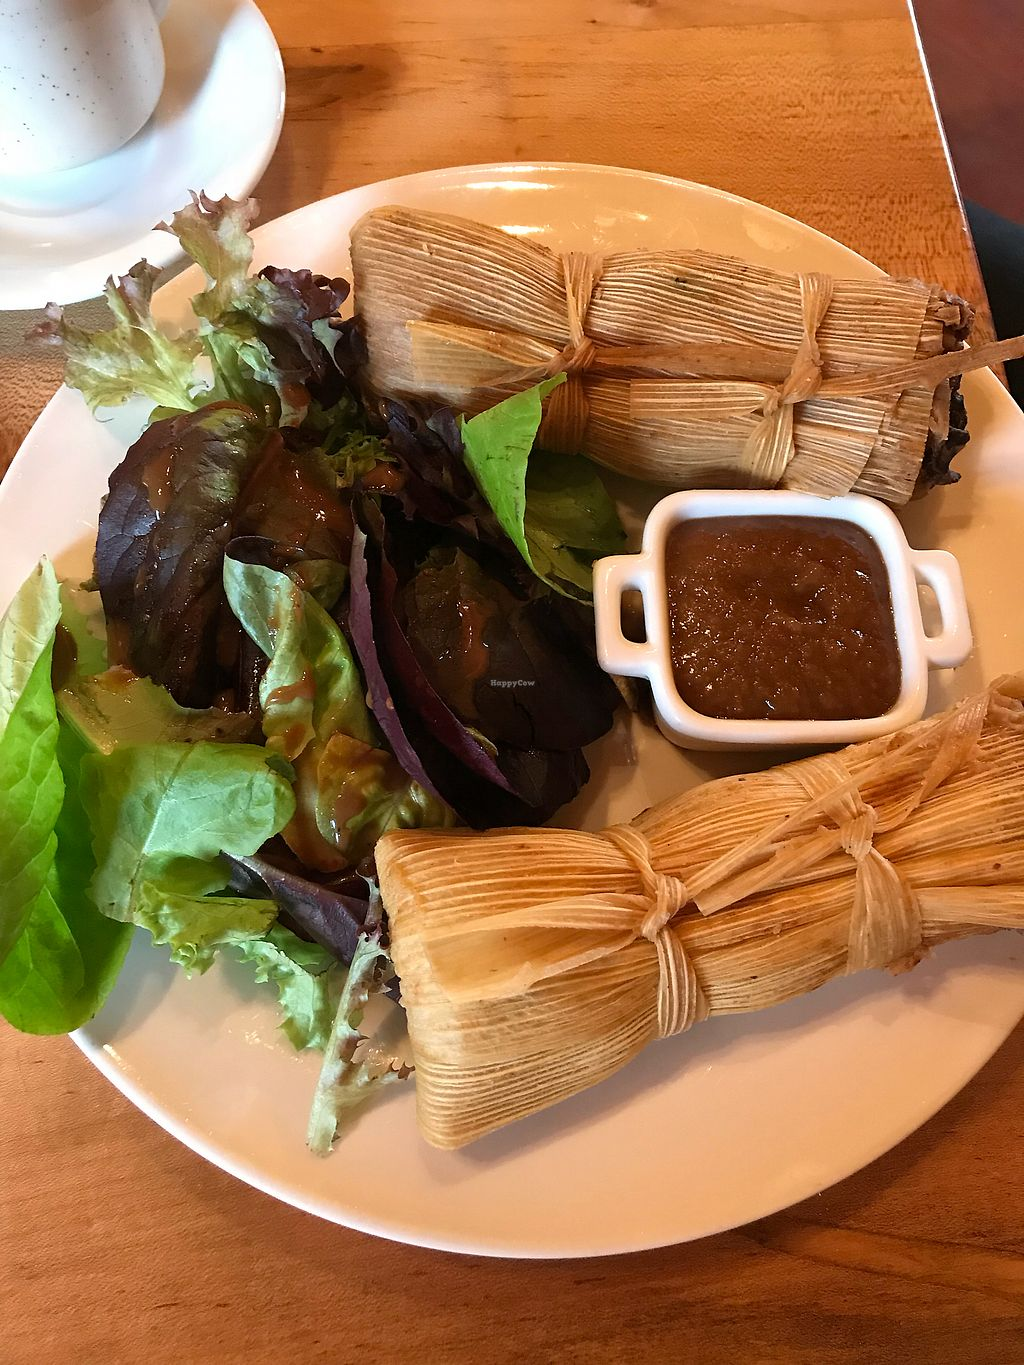 "Photo of La Guinguette  by <a href=""/members/profile/Izzyeddleman"">Izzyeddleman</a> <br/>Wild mushroom tamales  <br/> December 15, 2017  - <a href='/contact/abuse/image/70457/335847'>Report</a>"